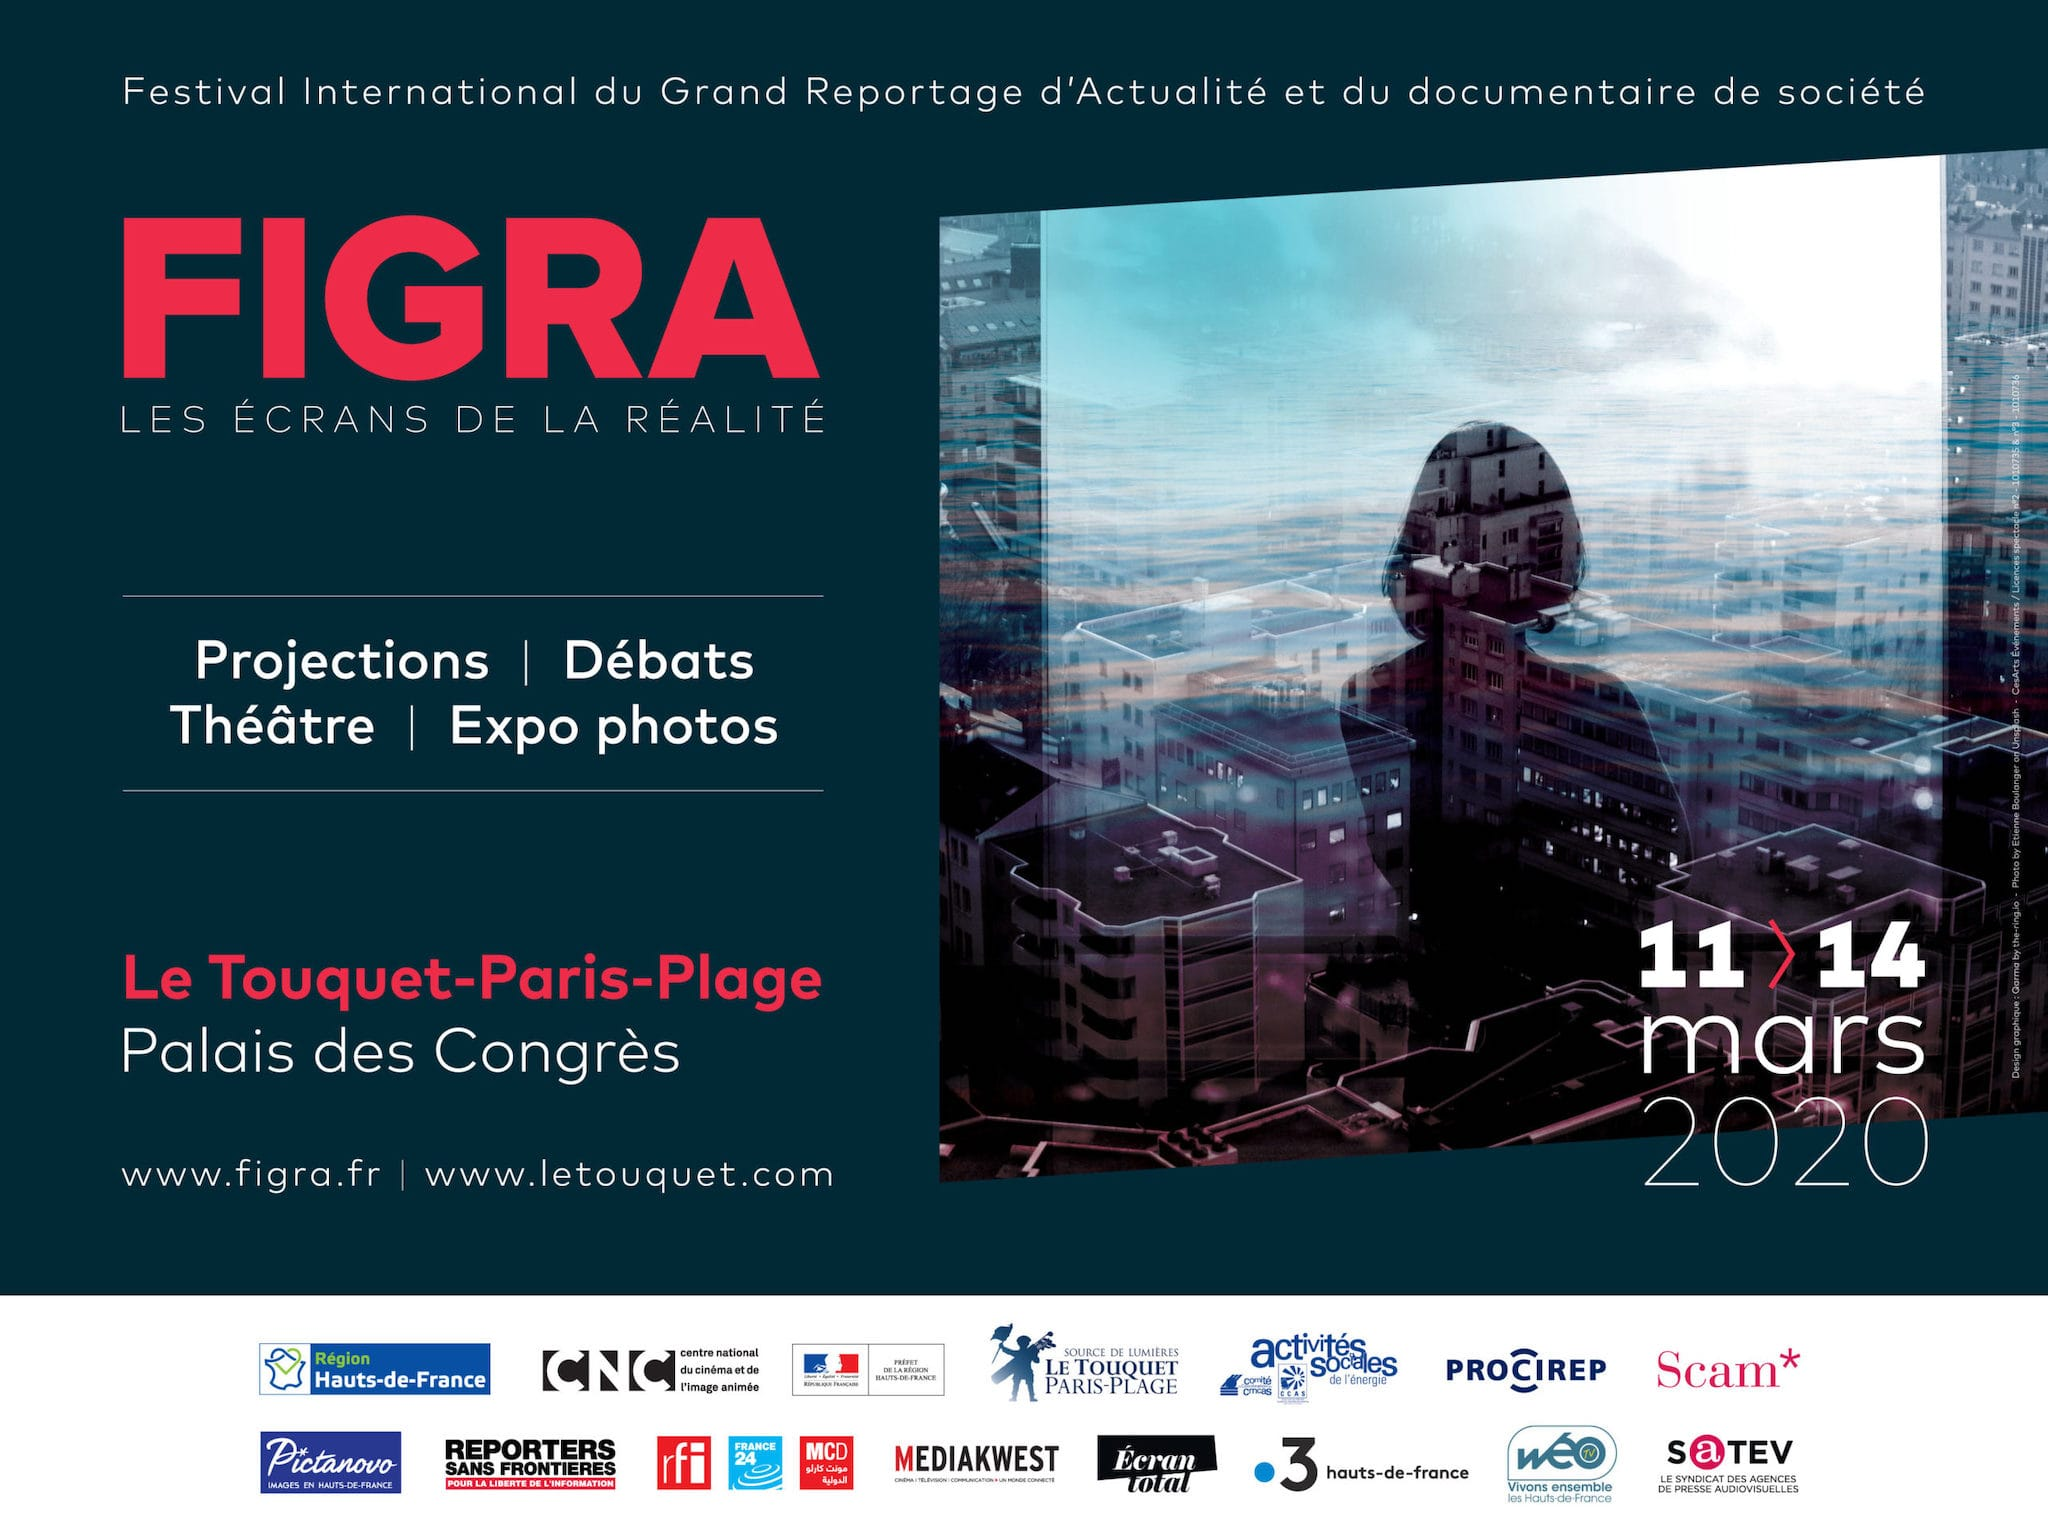 Festival International du Grand Reportage d'Actualité FIGRA 2020